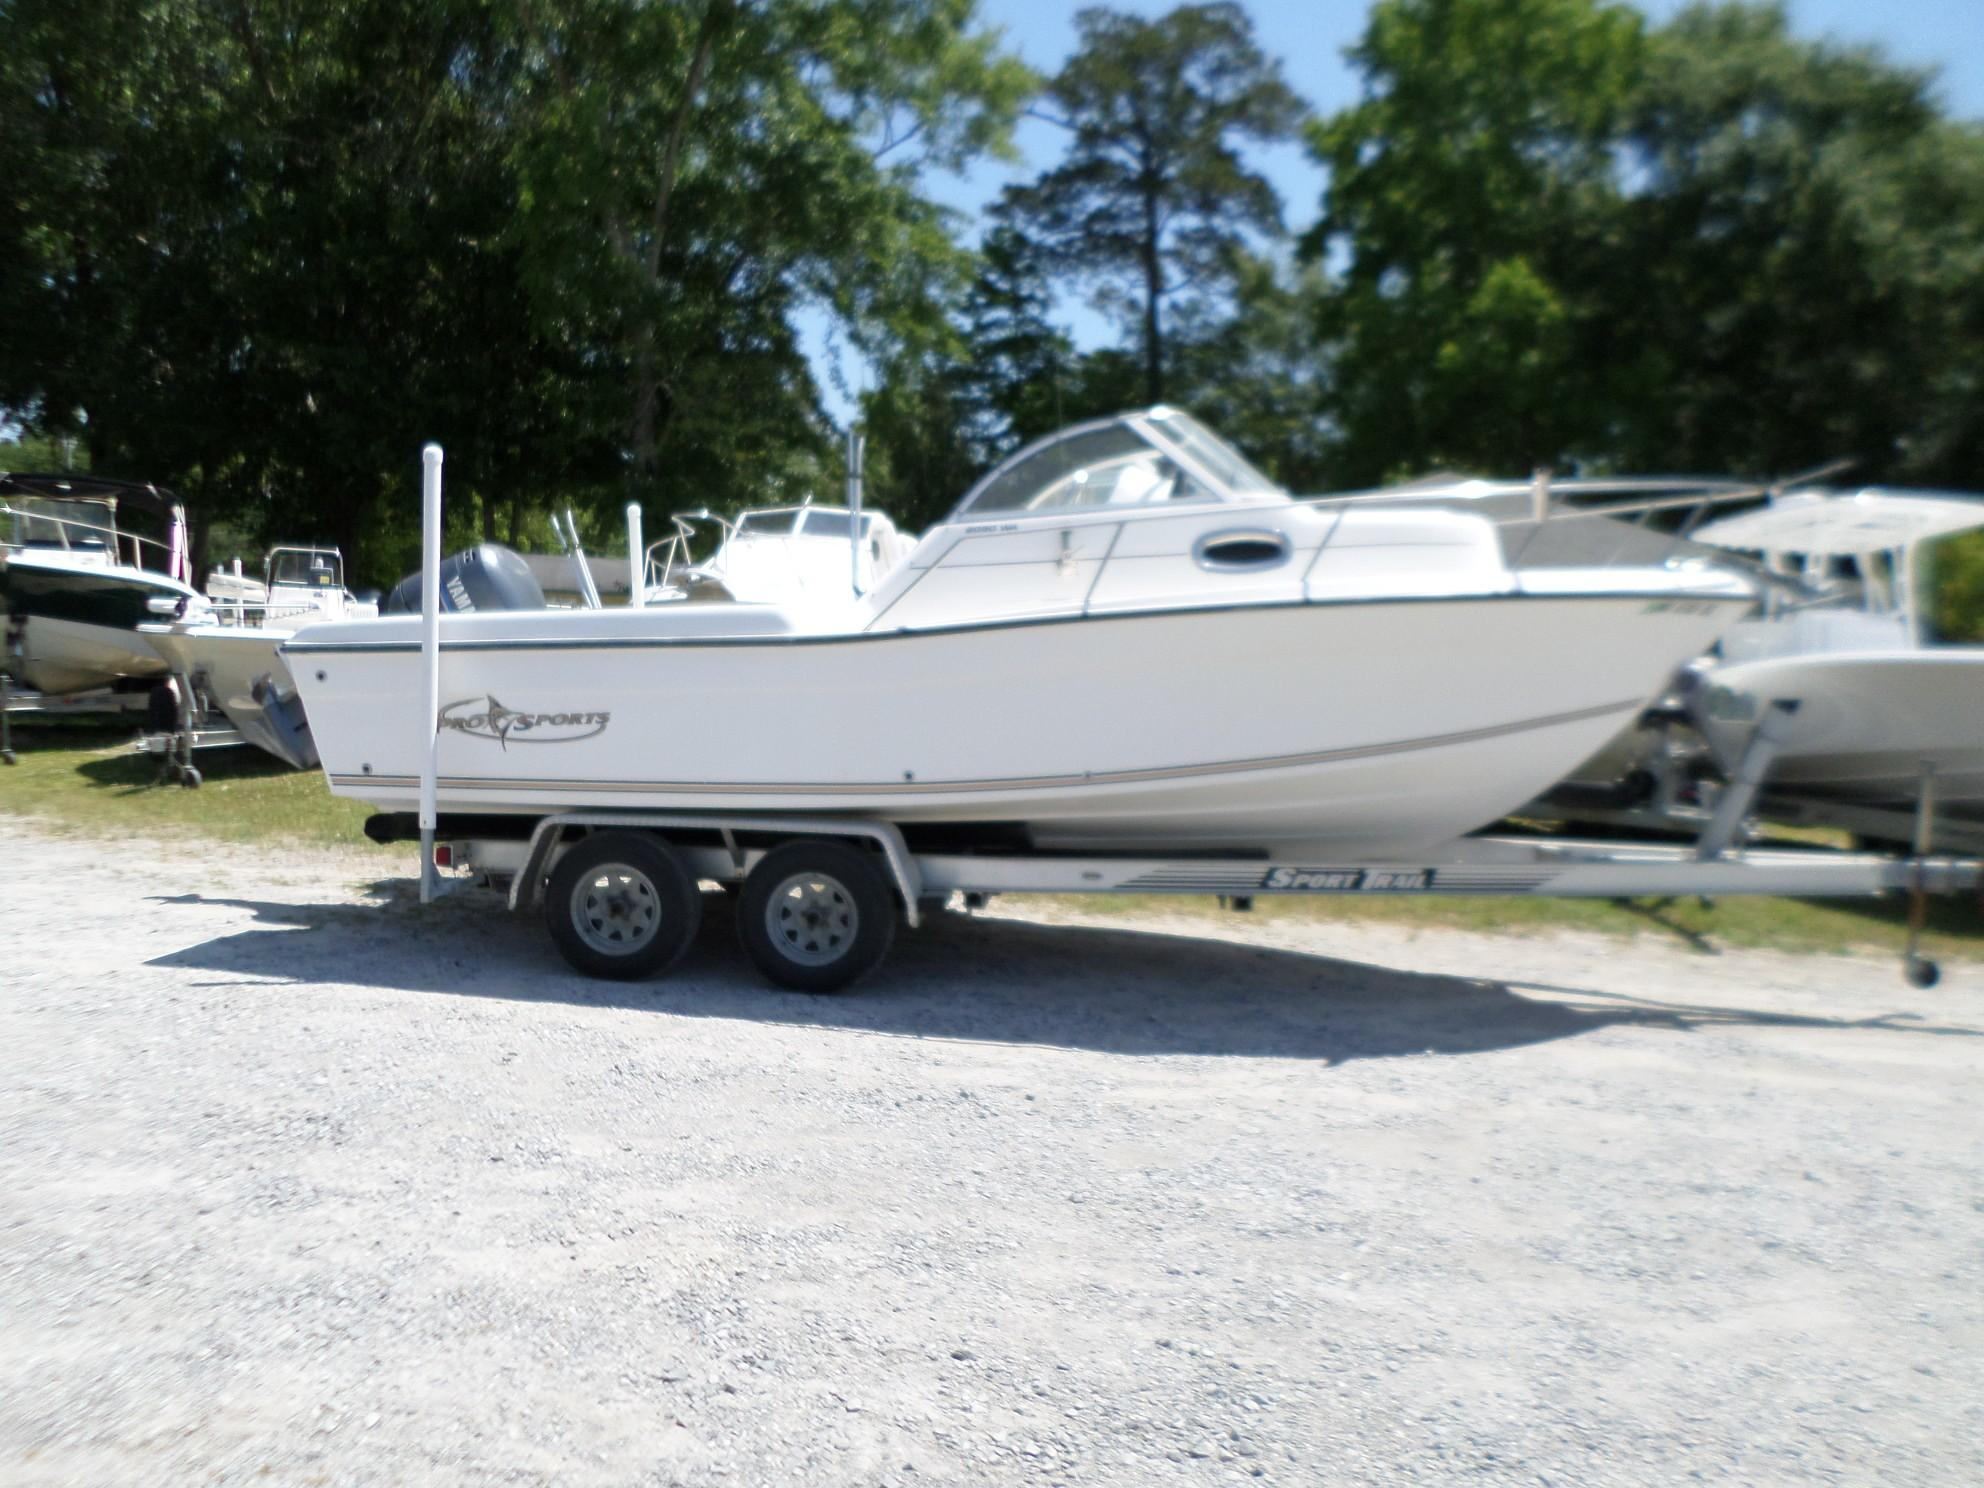 Used Cars Slidell La >> Used 2003 21' Pro Sports 2050 WA Saltwater Offshore Fishing in Slidell, Louisiana